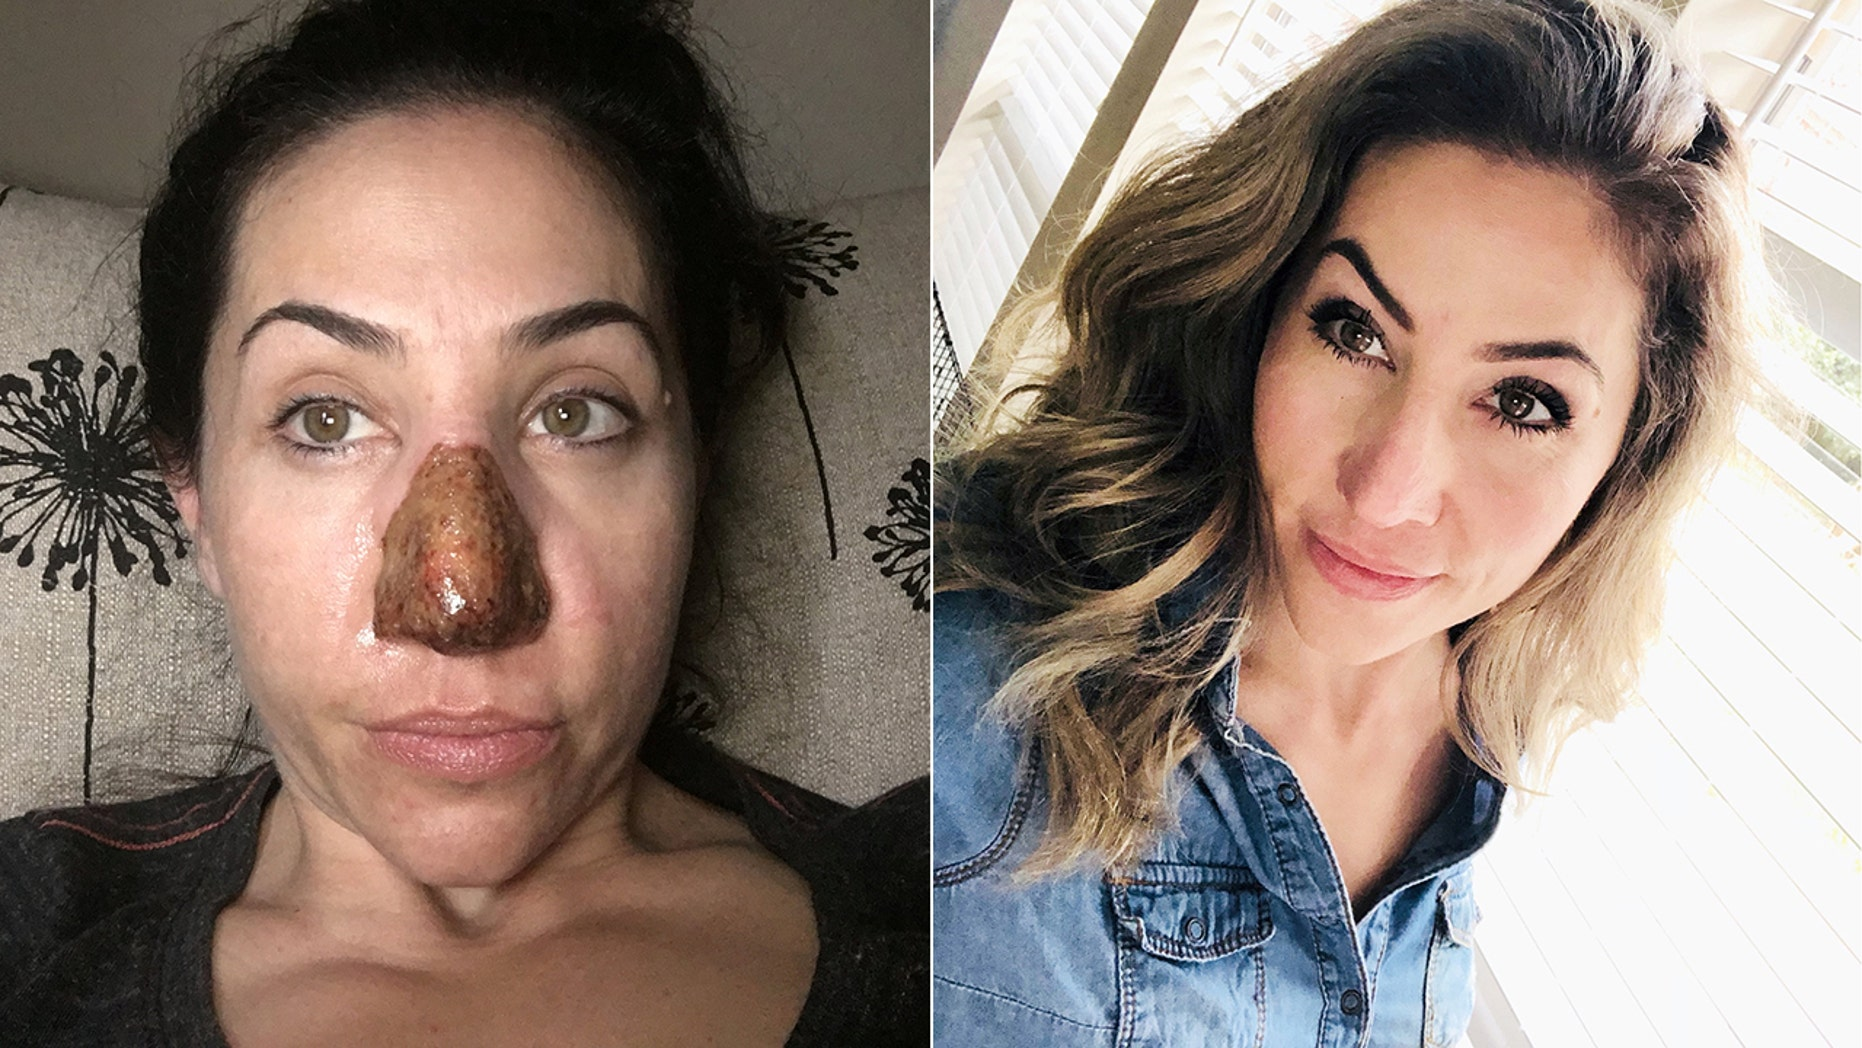 Adrianna Ely had the skin on her nose burned off as part of her treatment plan for a rare condition that caused her nose to morph and double in size.